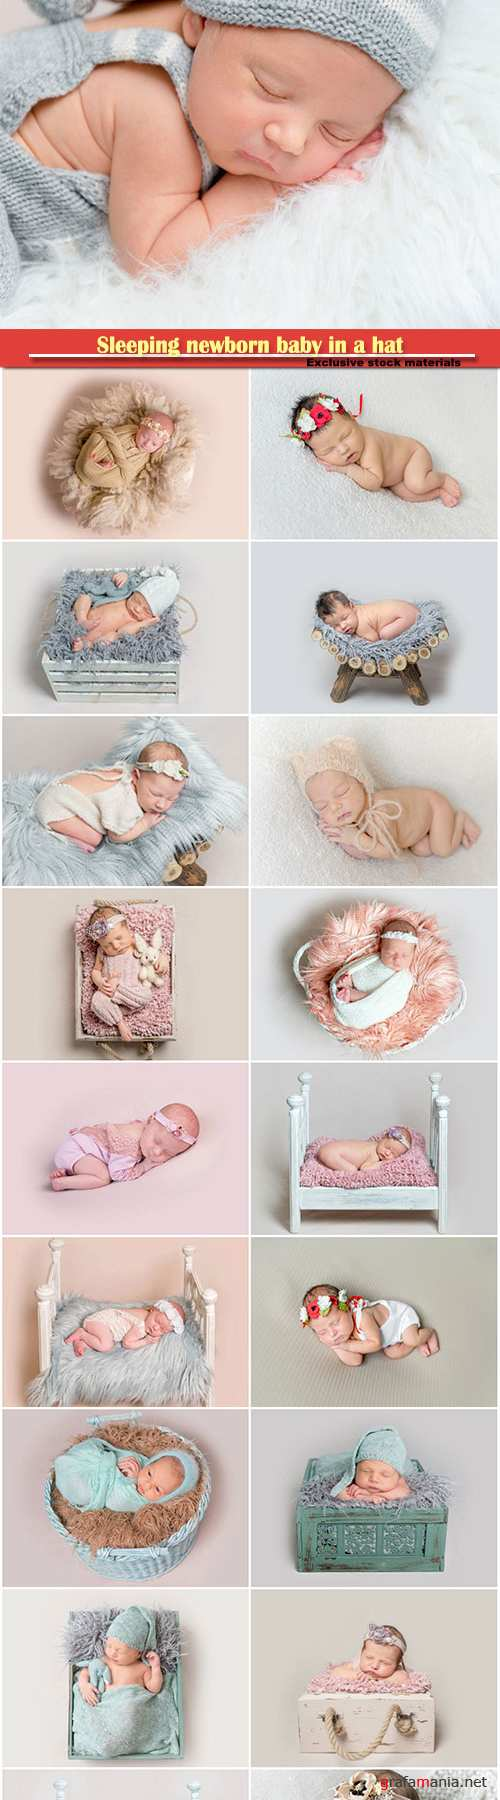 Sleeping newborn baby in a hat